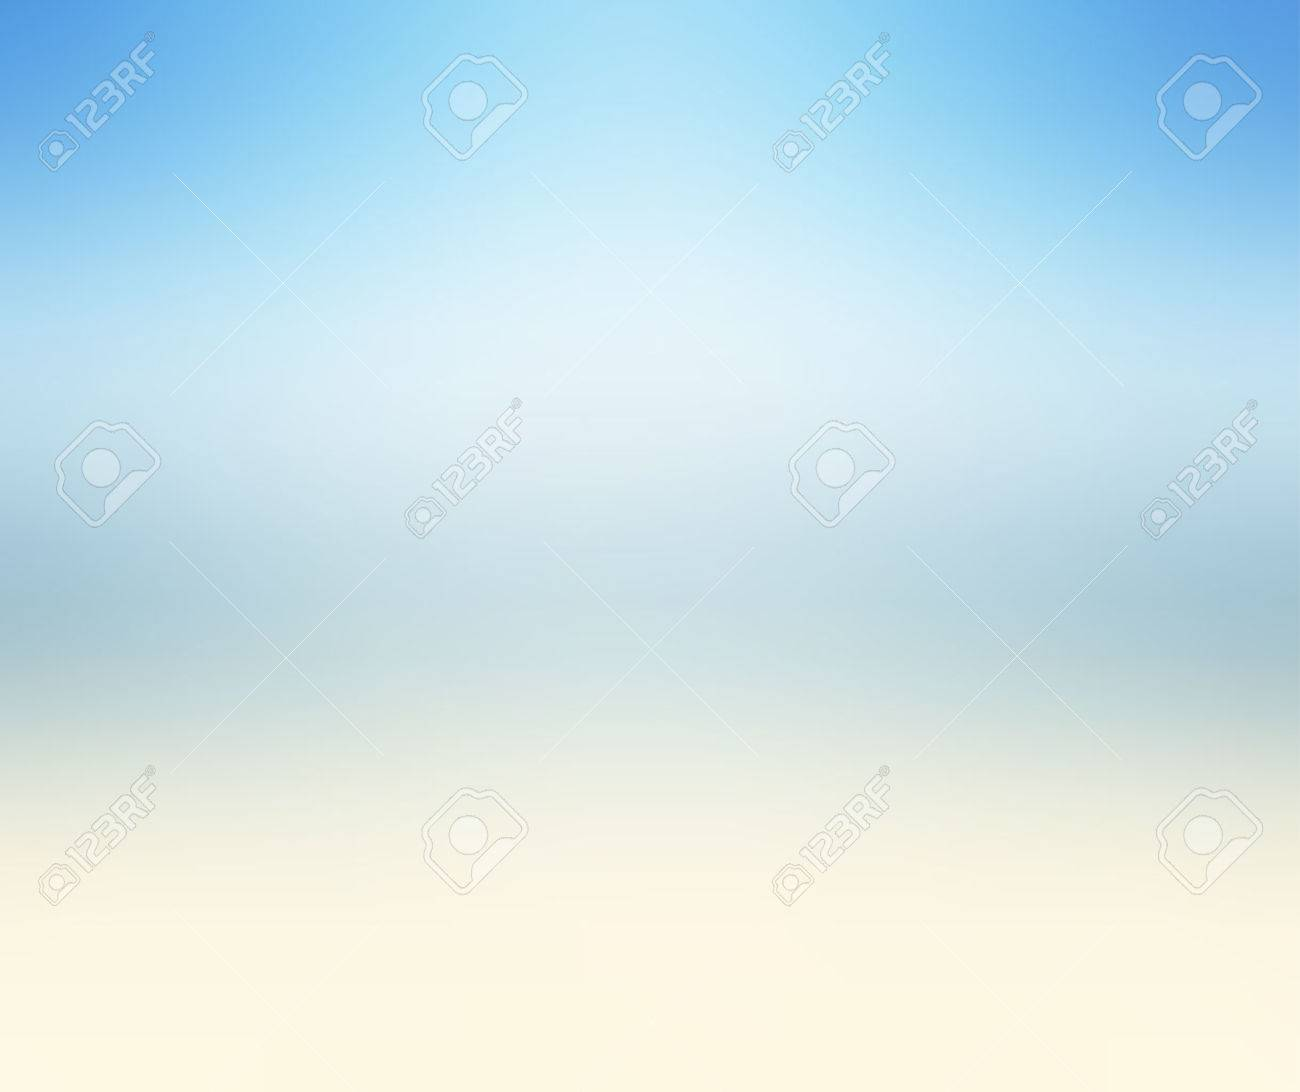 Abstract blurred contemporary texture background - Trendy business website template with copy space Stock Vector - 48802330